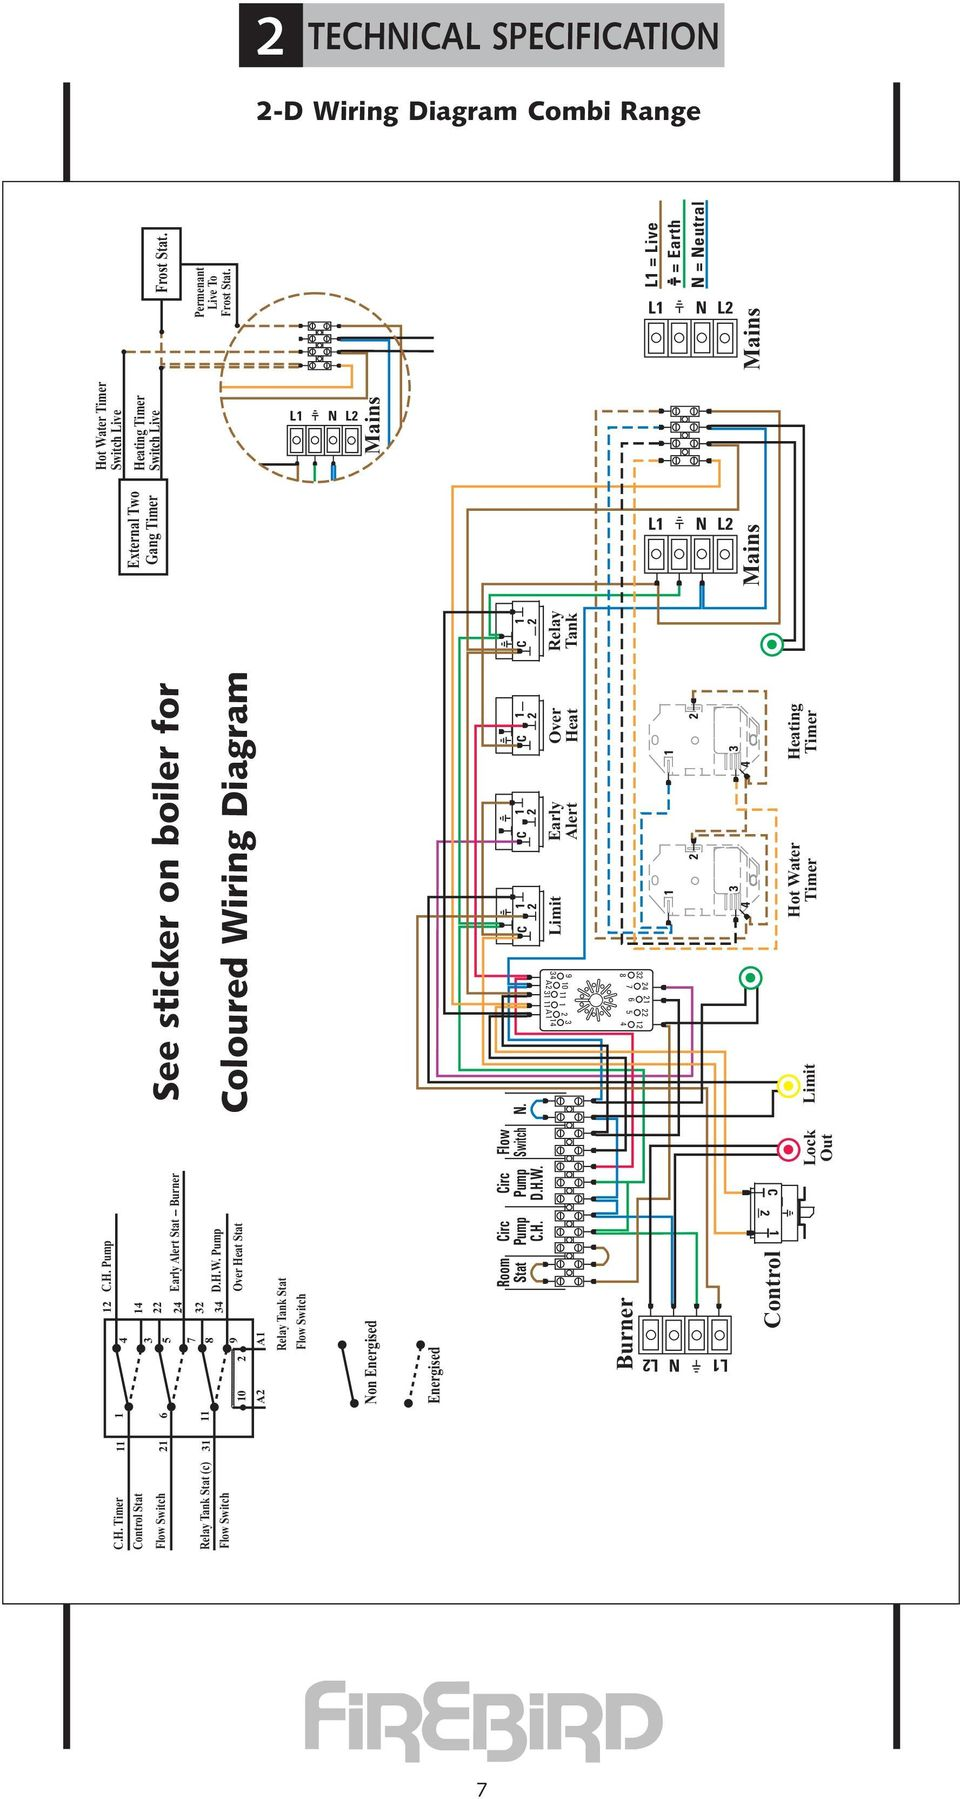 Combi Range Installation Commissioning Servicing User Instructions Heat Relay Wiring Diagram C 2 1 Control Lock Out